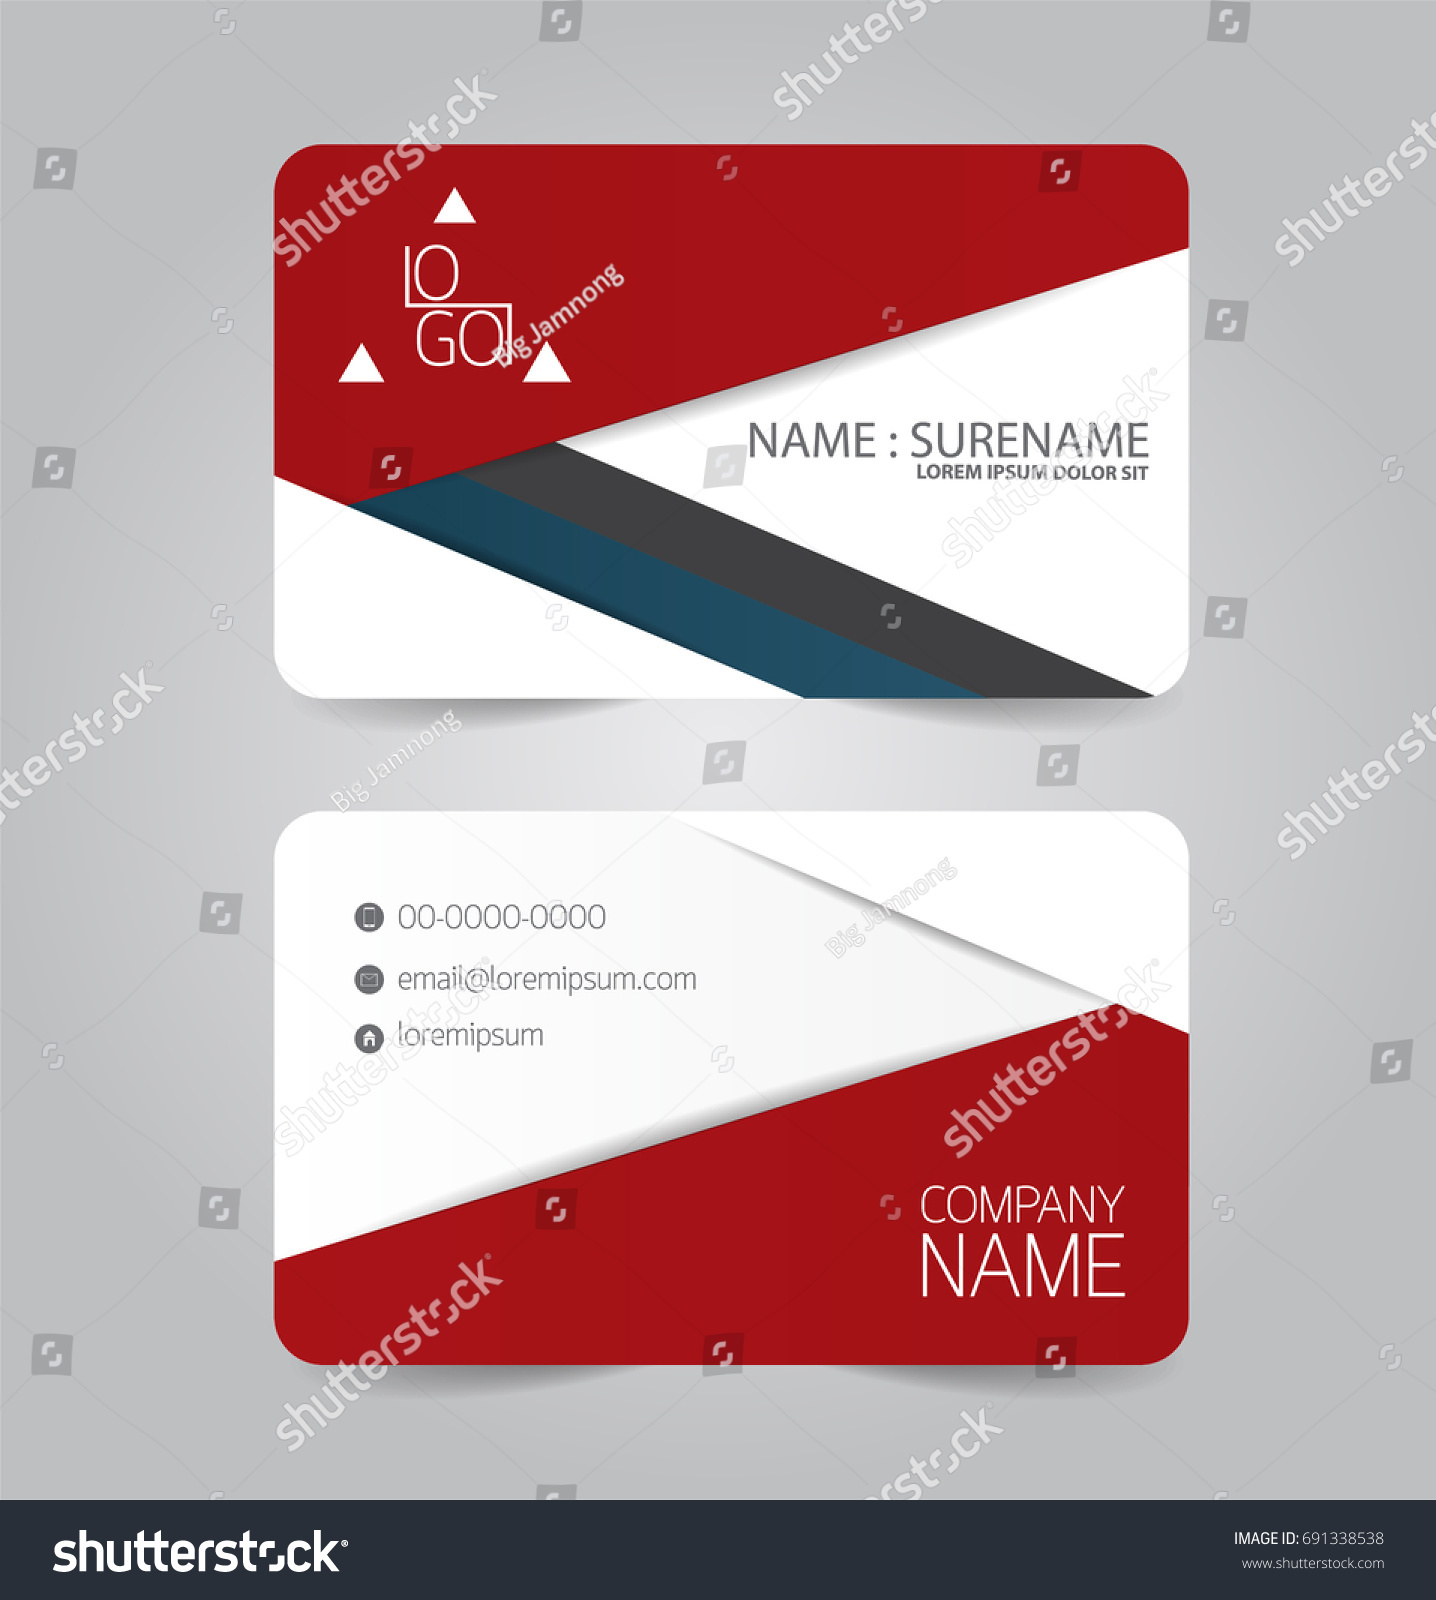 Modern Red Blue Business Name Card Stock Vector 691338538 - Shutterstock